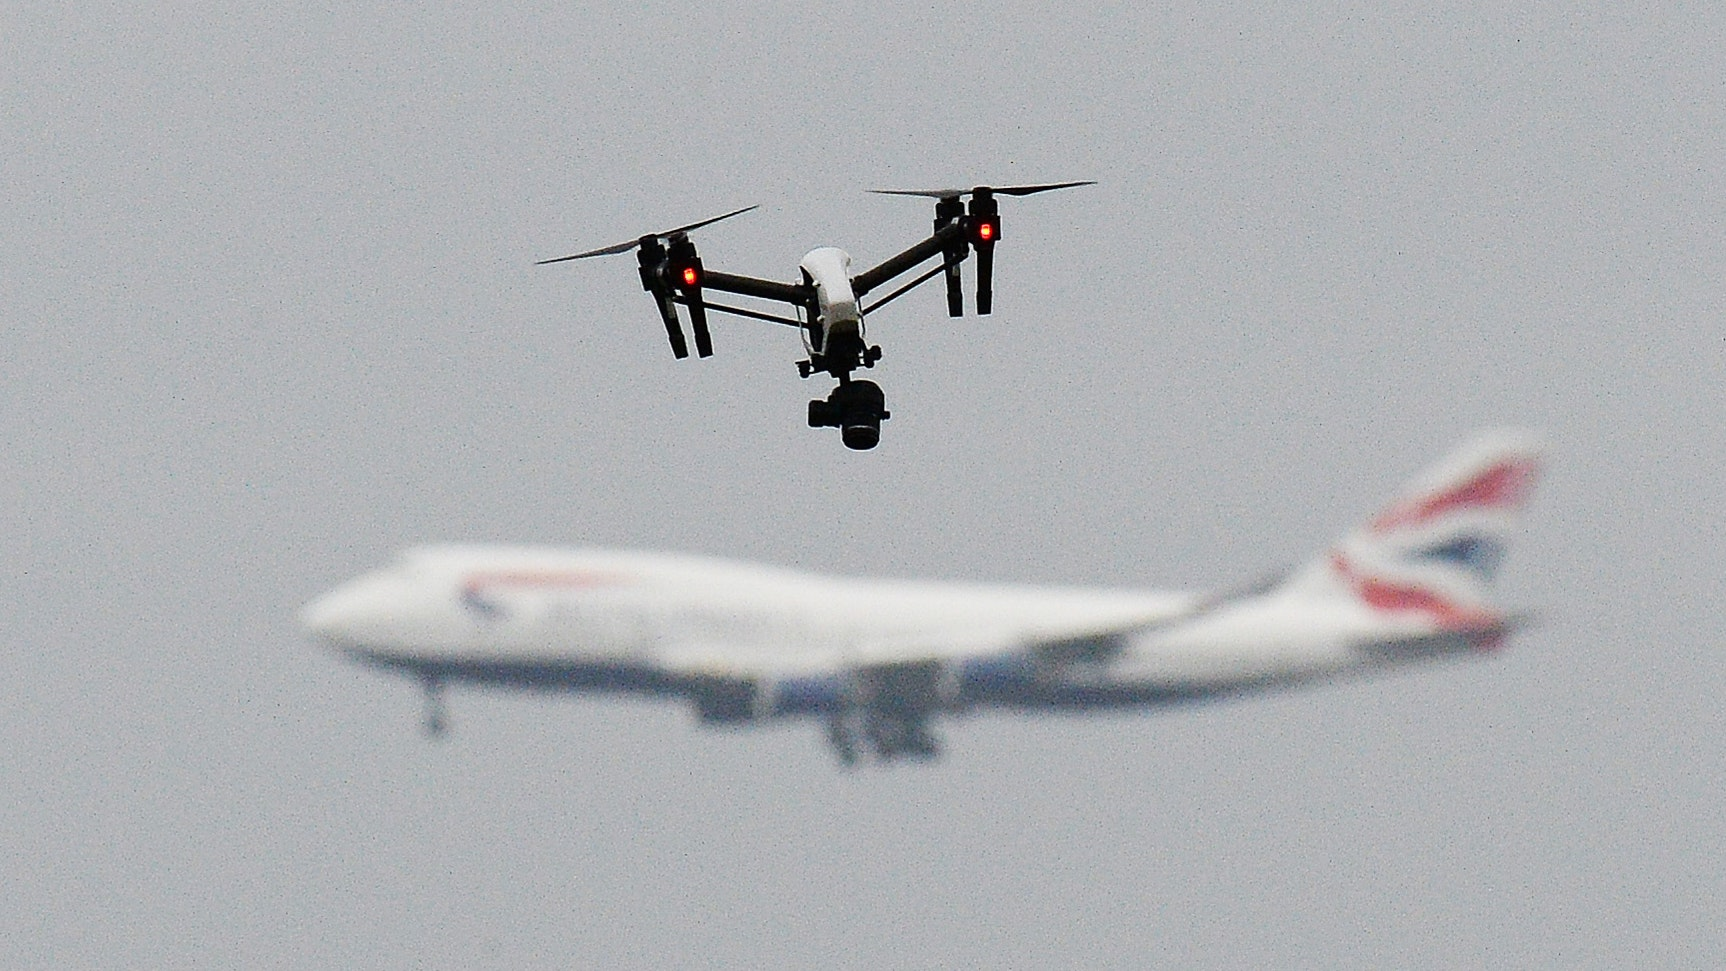 Drone sighting halts departures at Heathrow Airport in London